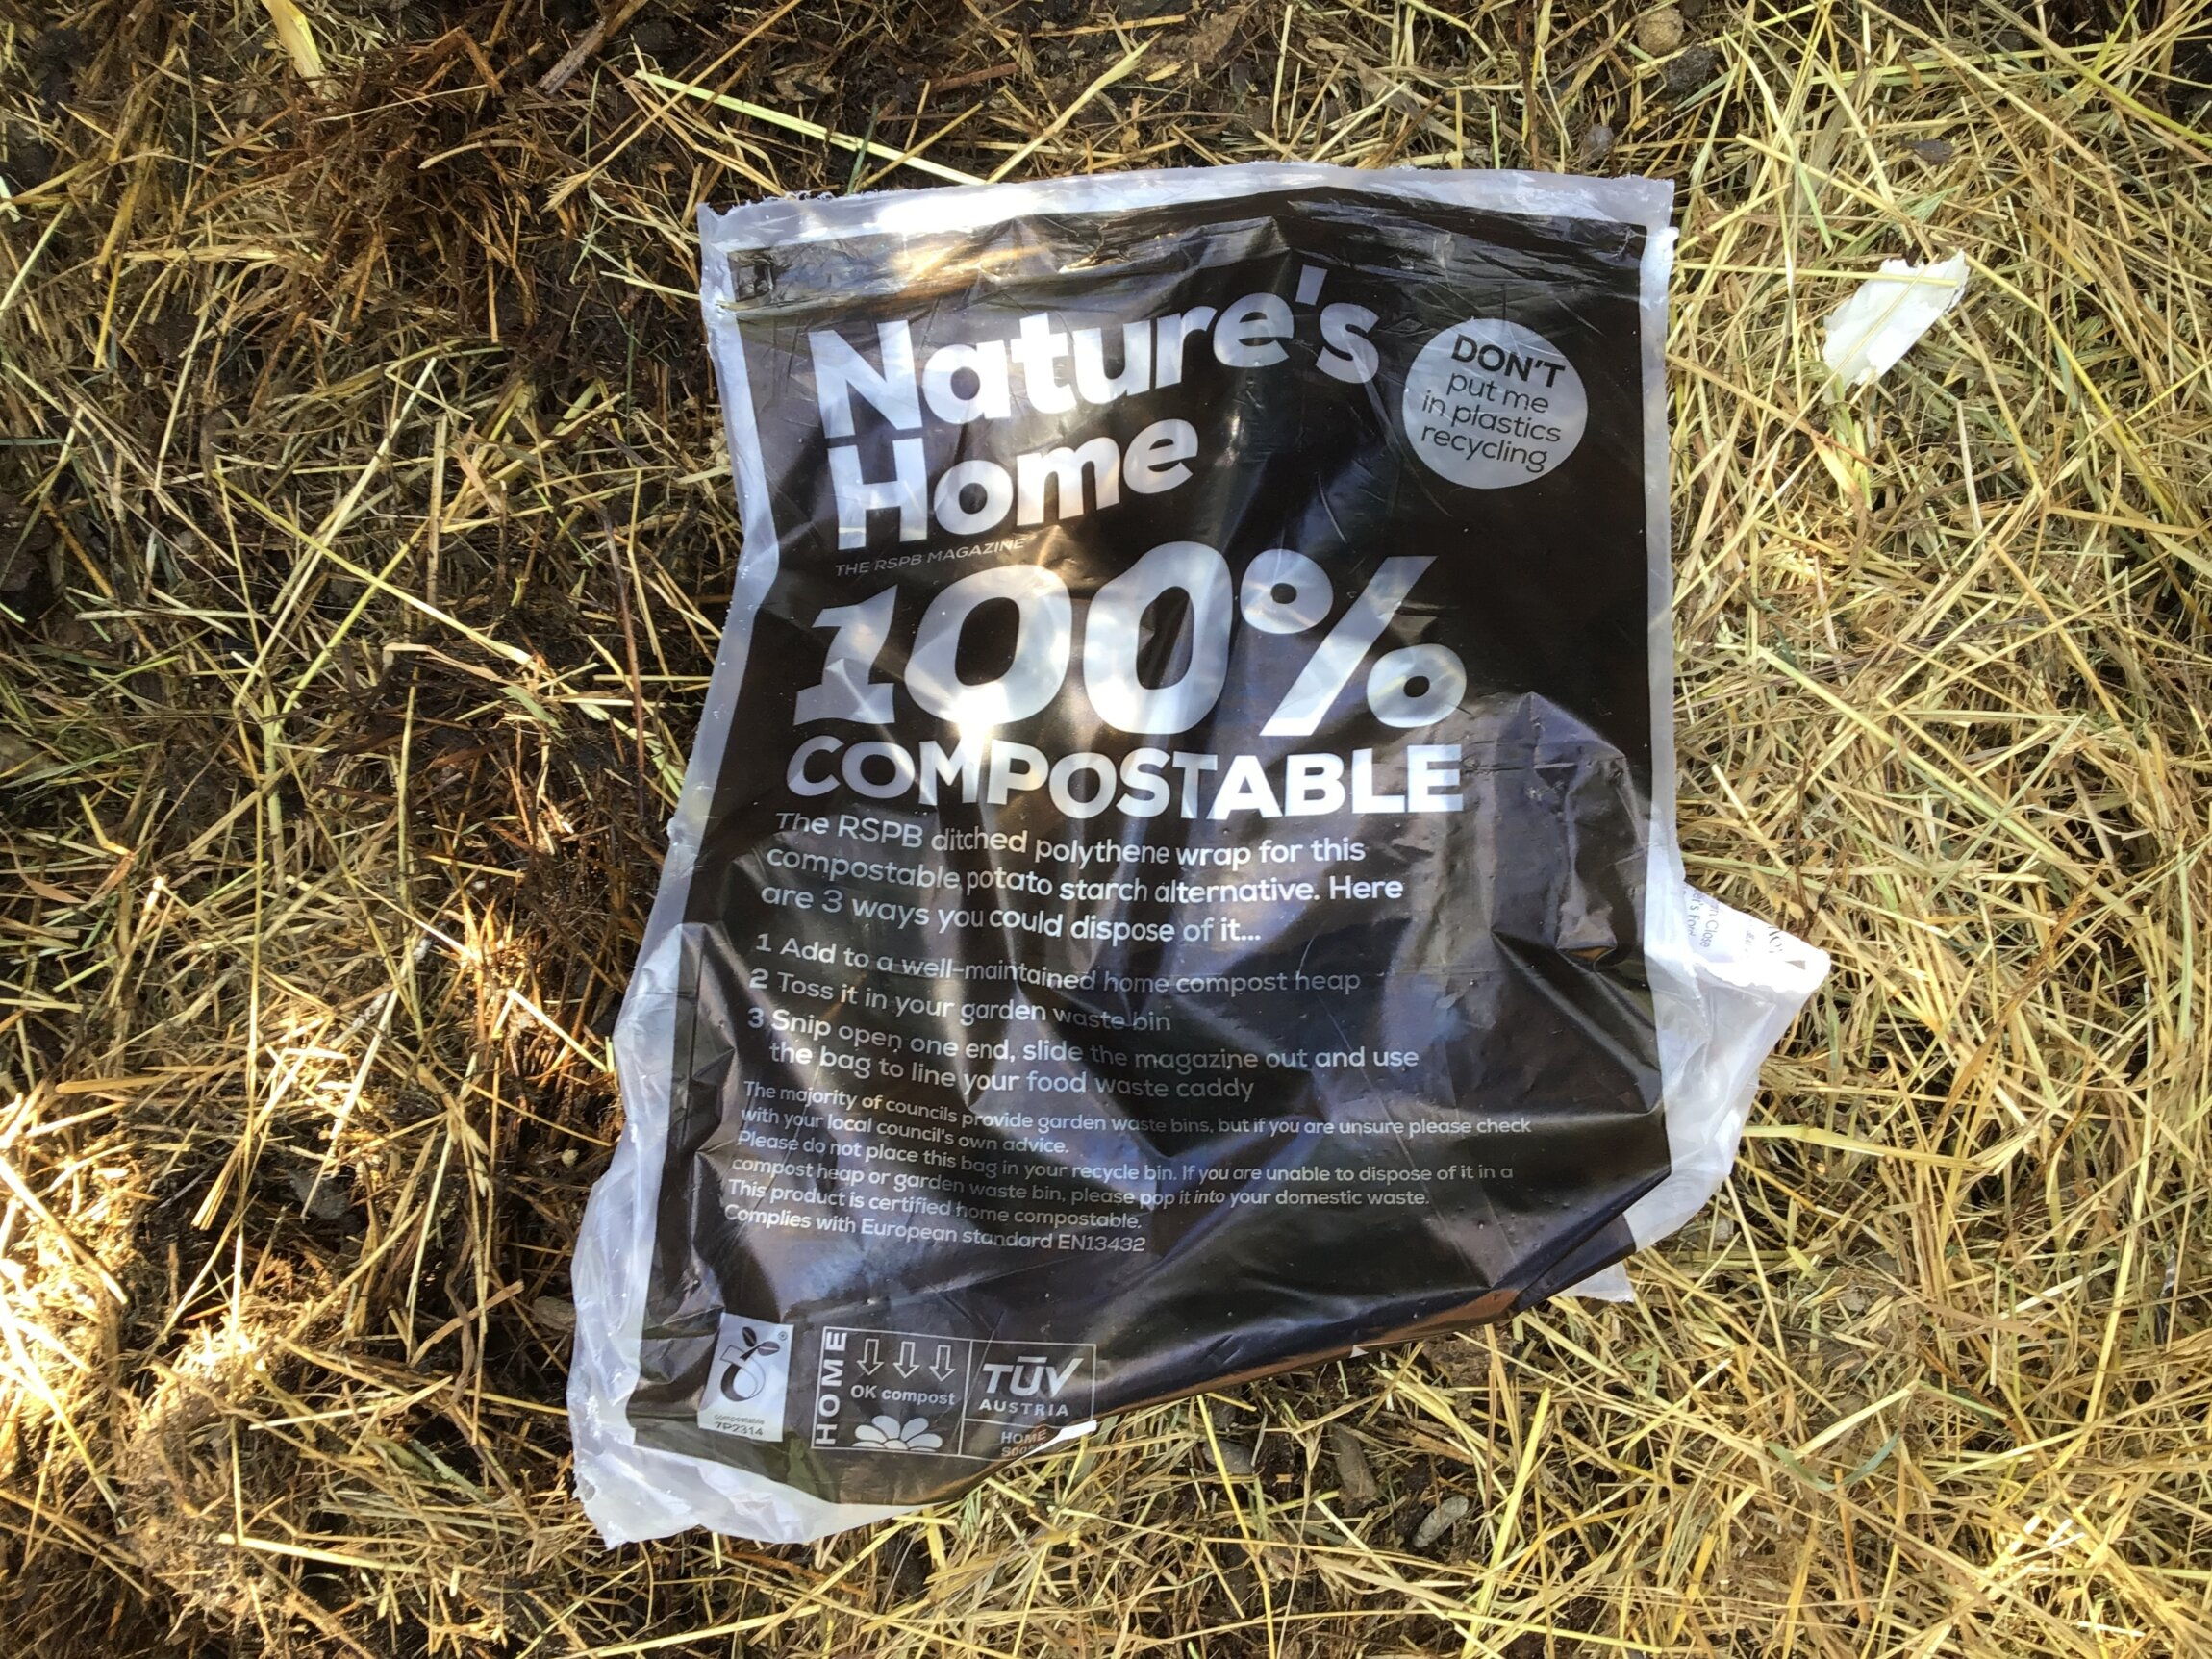 A compostable potato starch bag on a background of straw